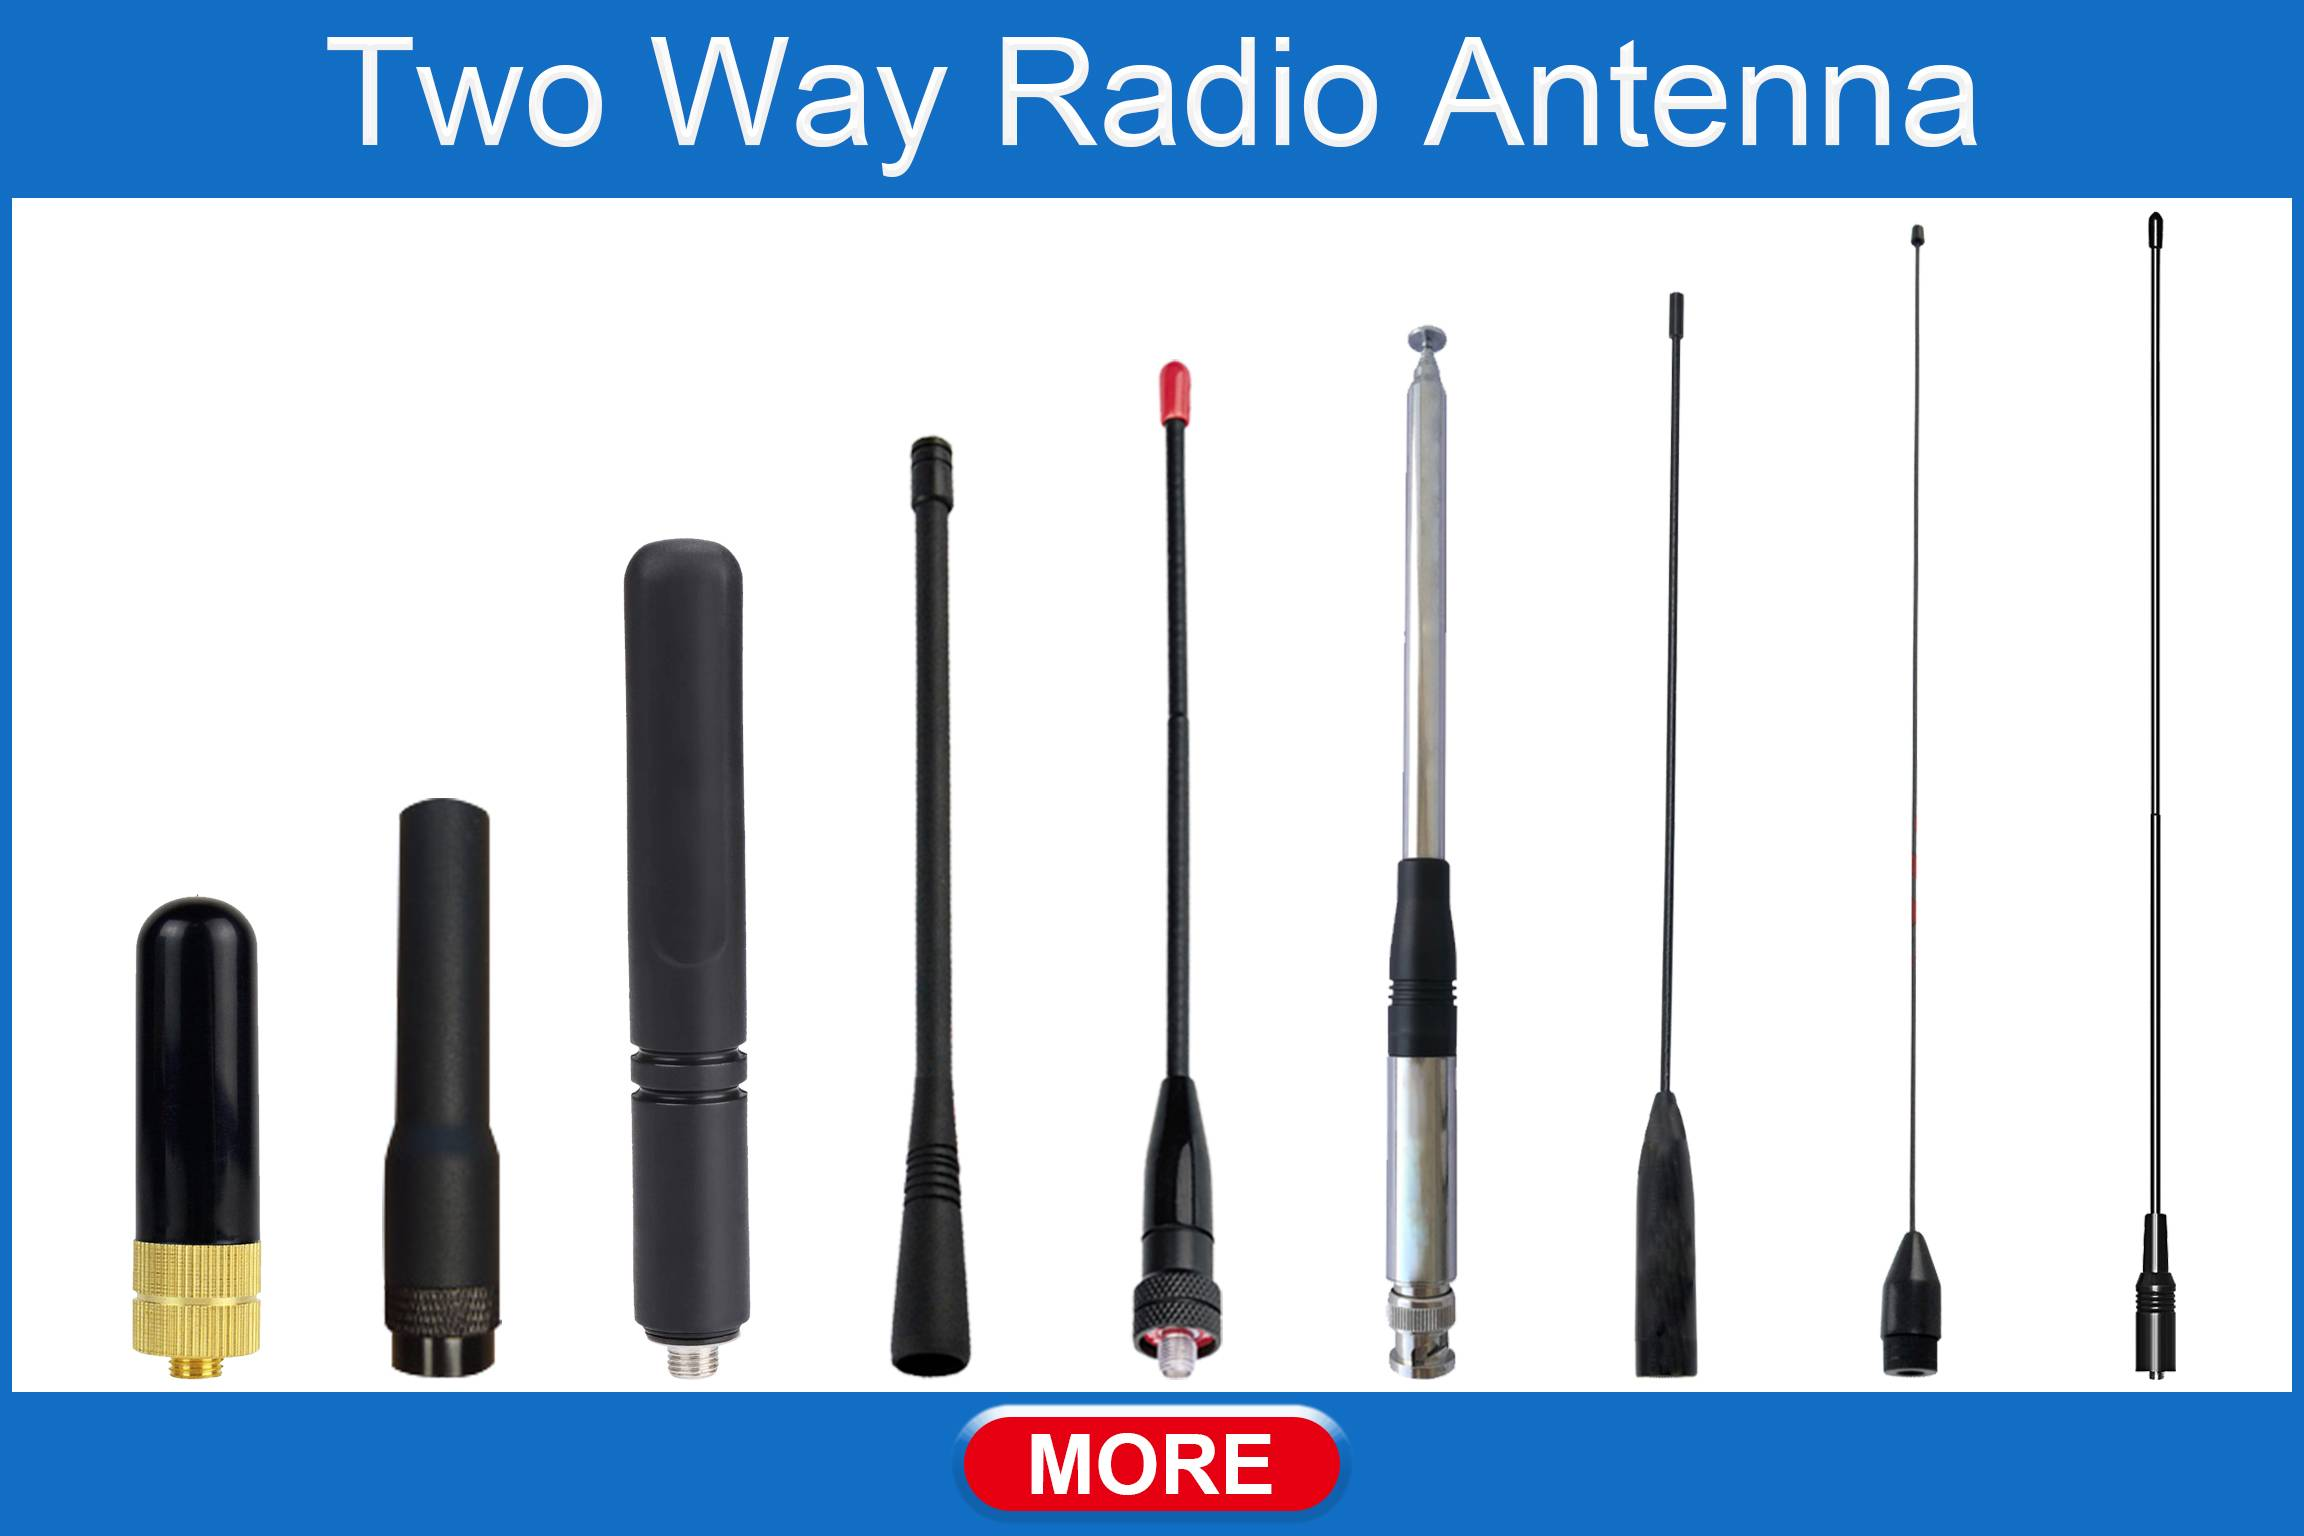 Two Way Raidió Antenna